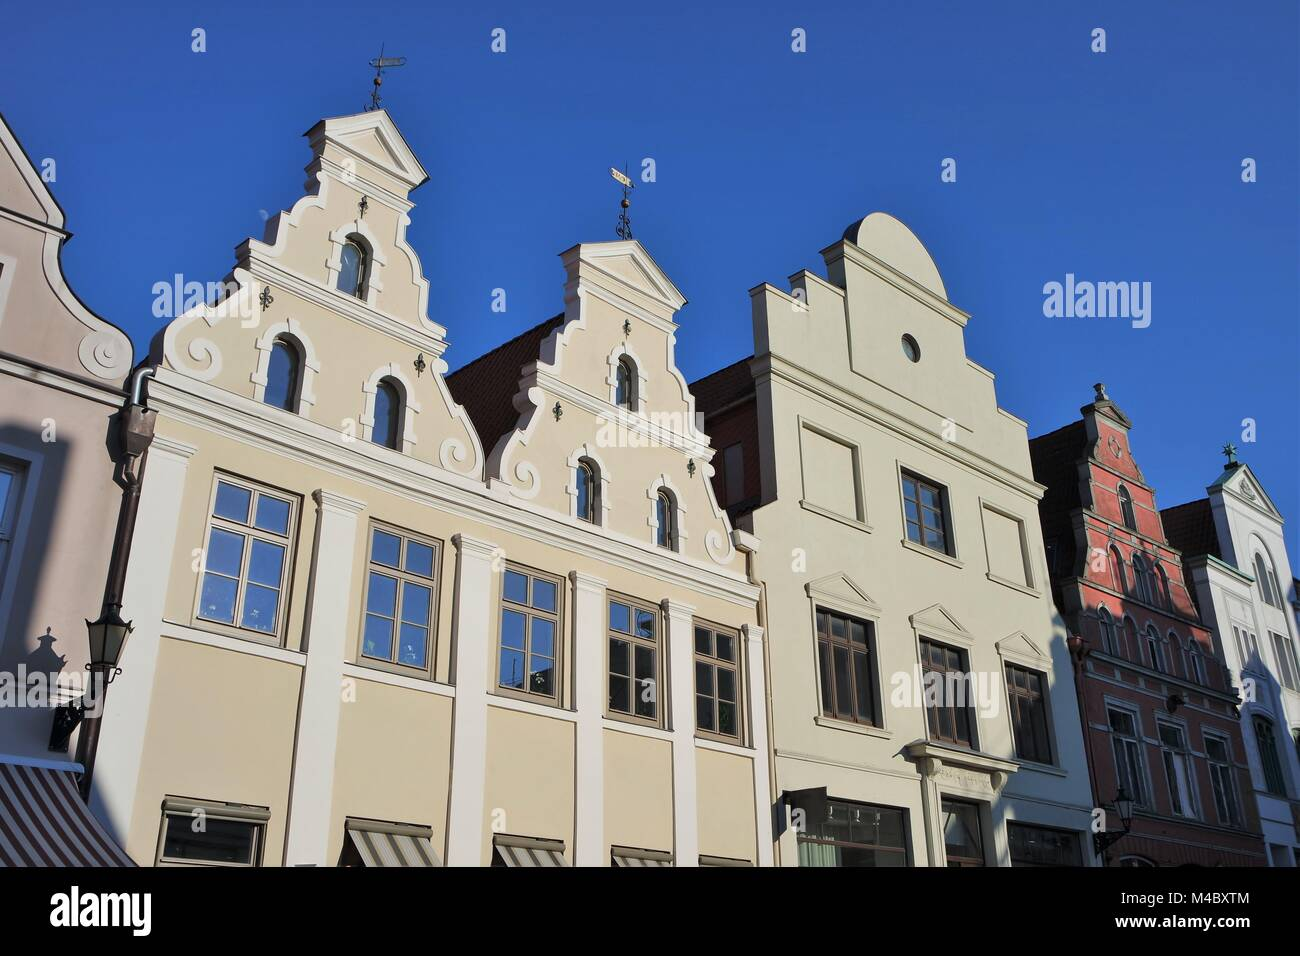 Old town architecture in Wismar - Stock Image